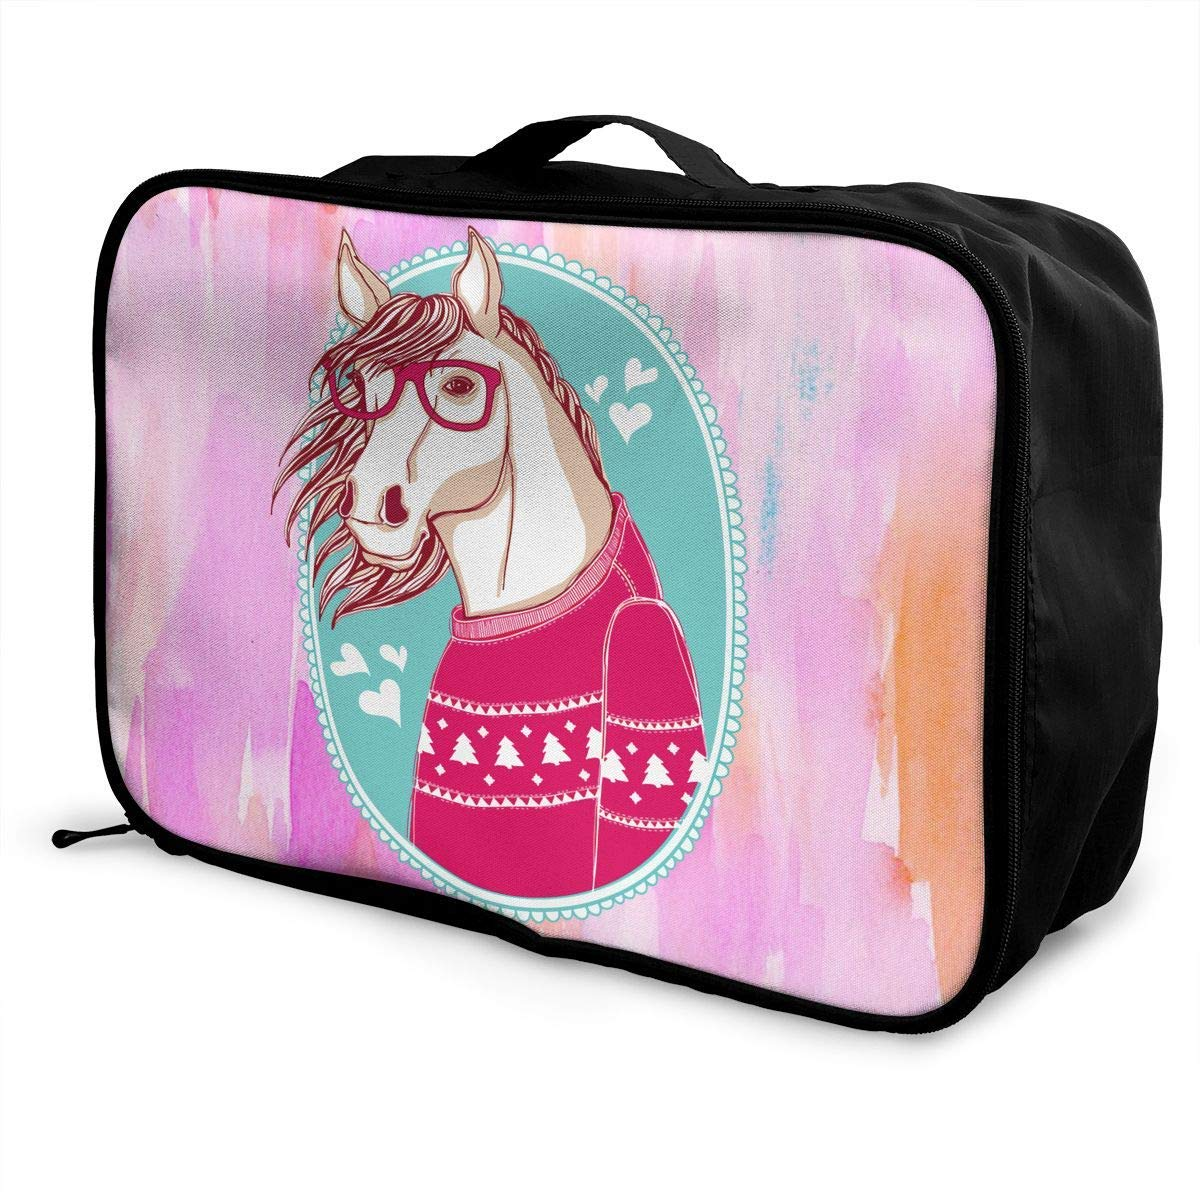 Portable Luggage Duffel Bag Horse Pink Travel Bags Carry-on In Trolley Handle